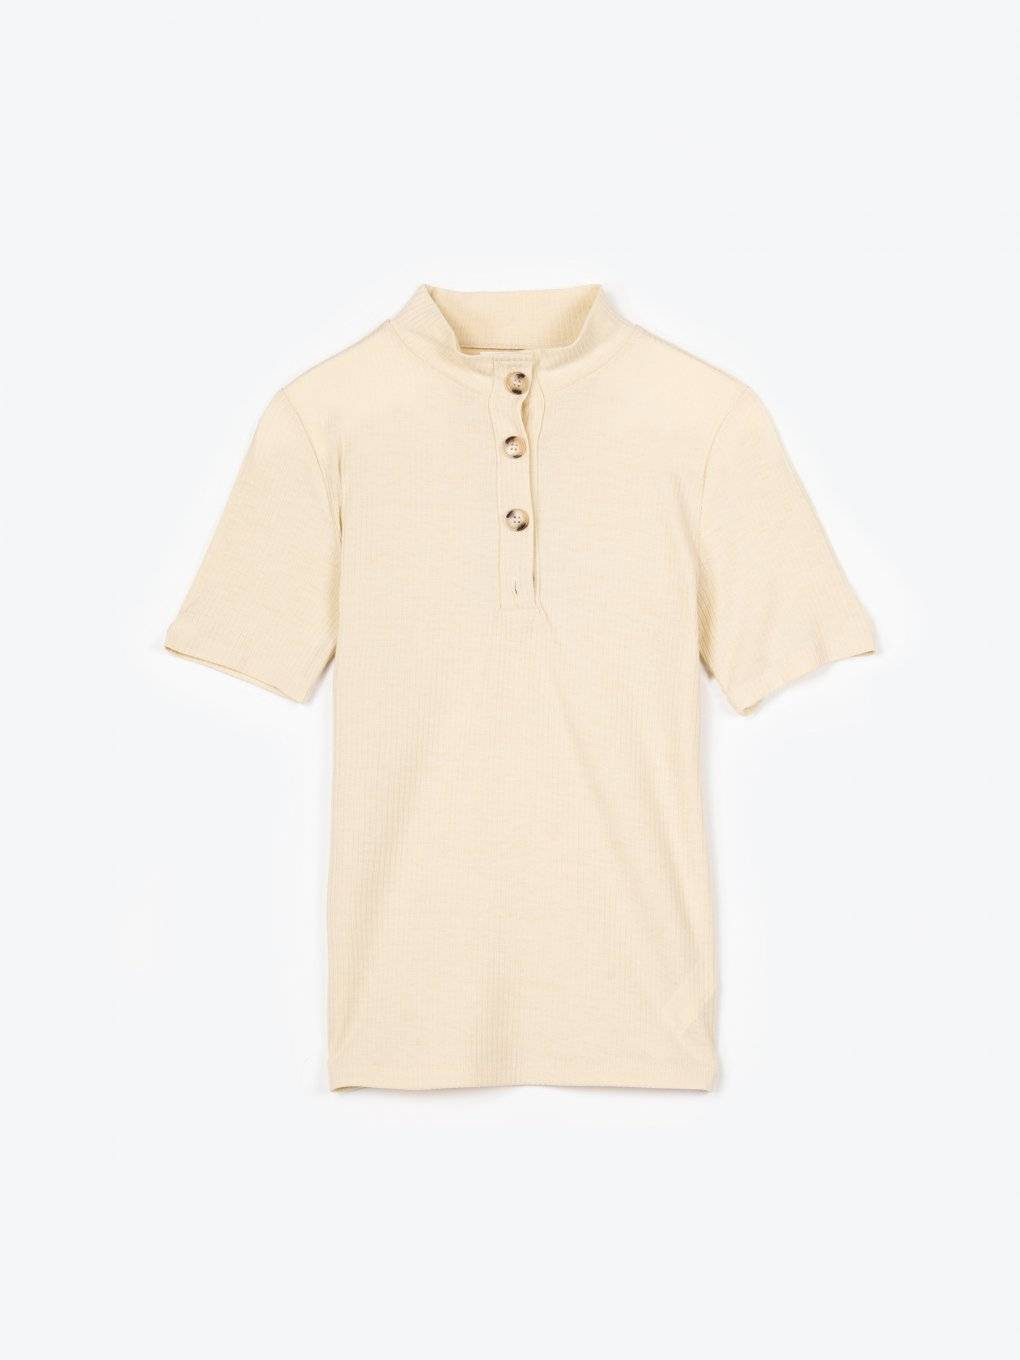 Button up t-shirt